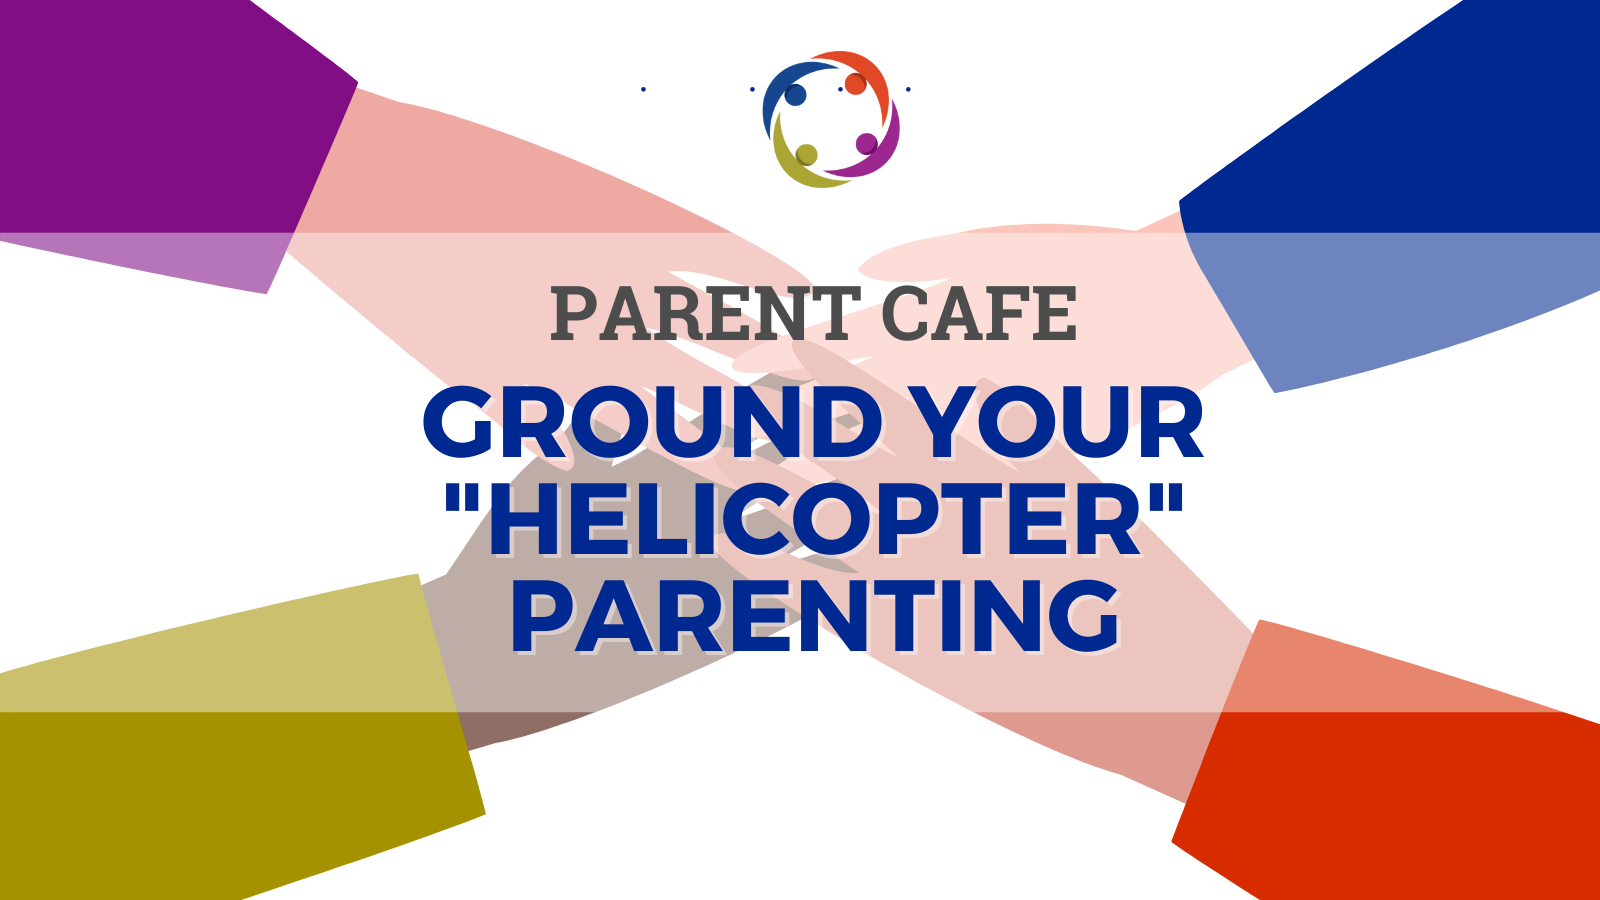 Parent Cafe: Ground Your Helicopter Parenting